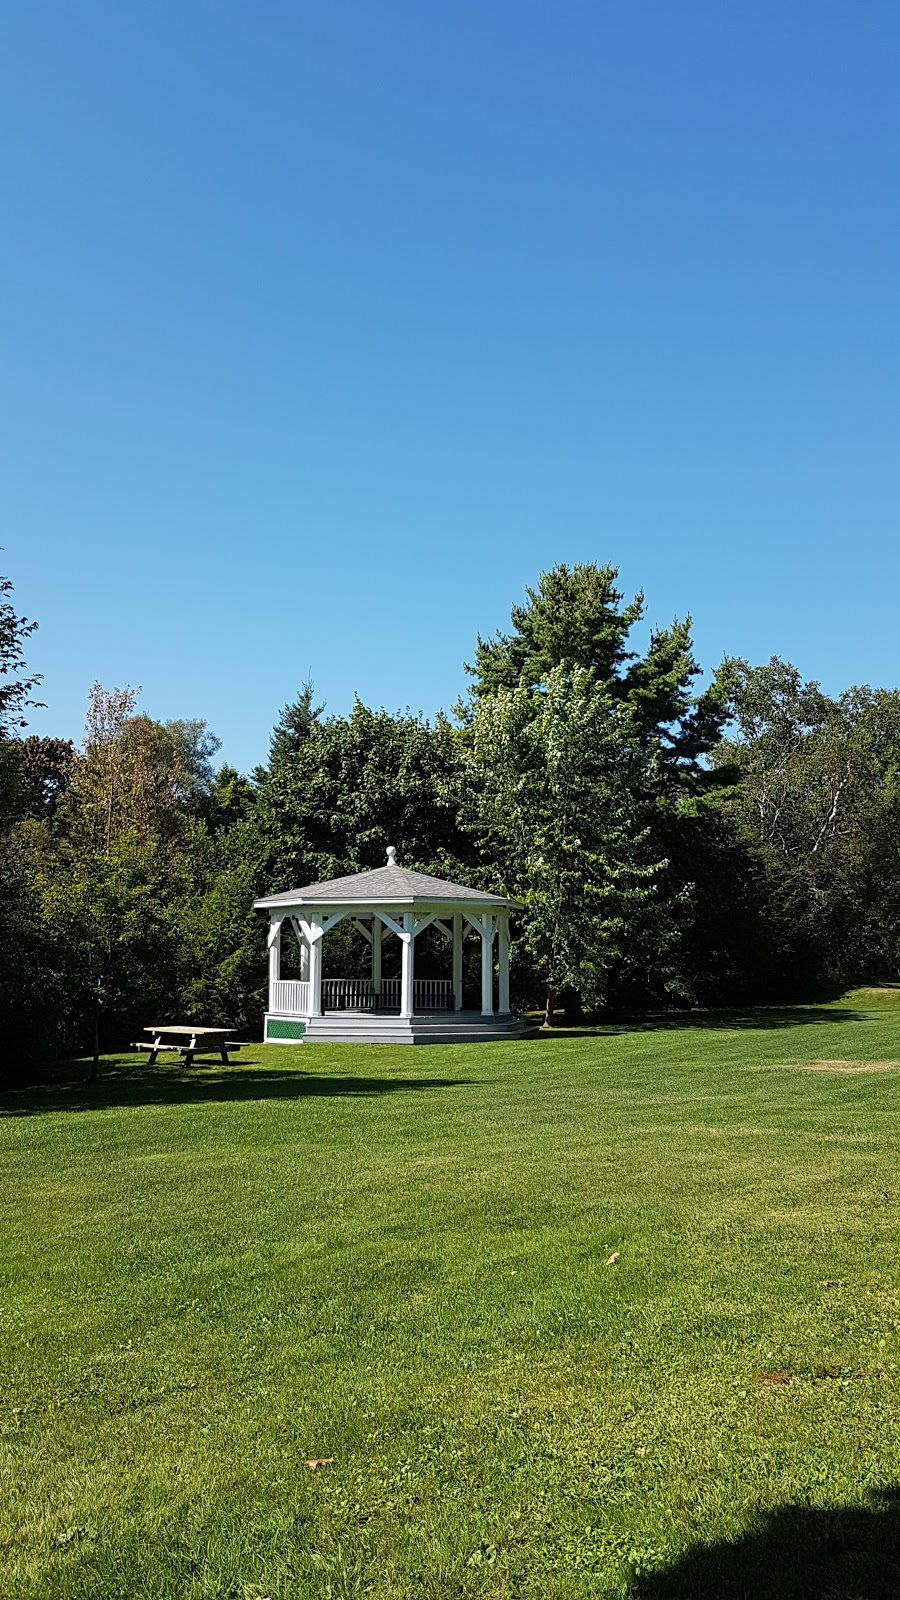 Lordly House Museum   museum   133 Central St, Chester, NS B0J 1J0, Canada   9022753842 OR +1 902-275-3842